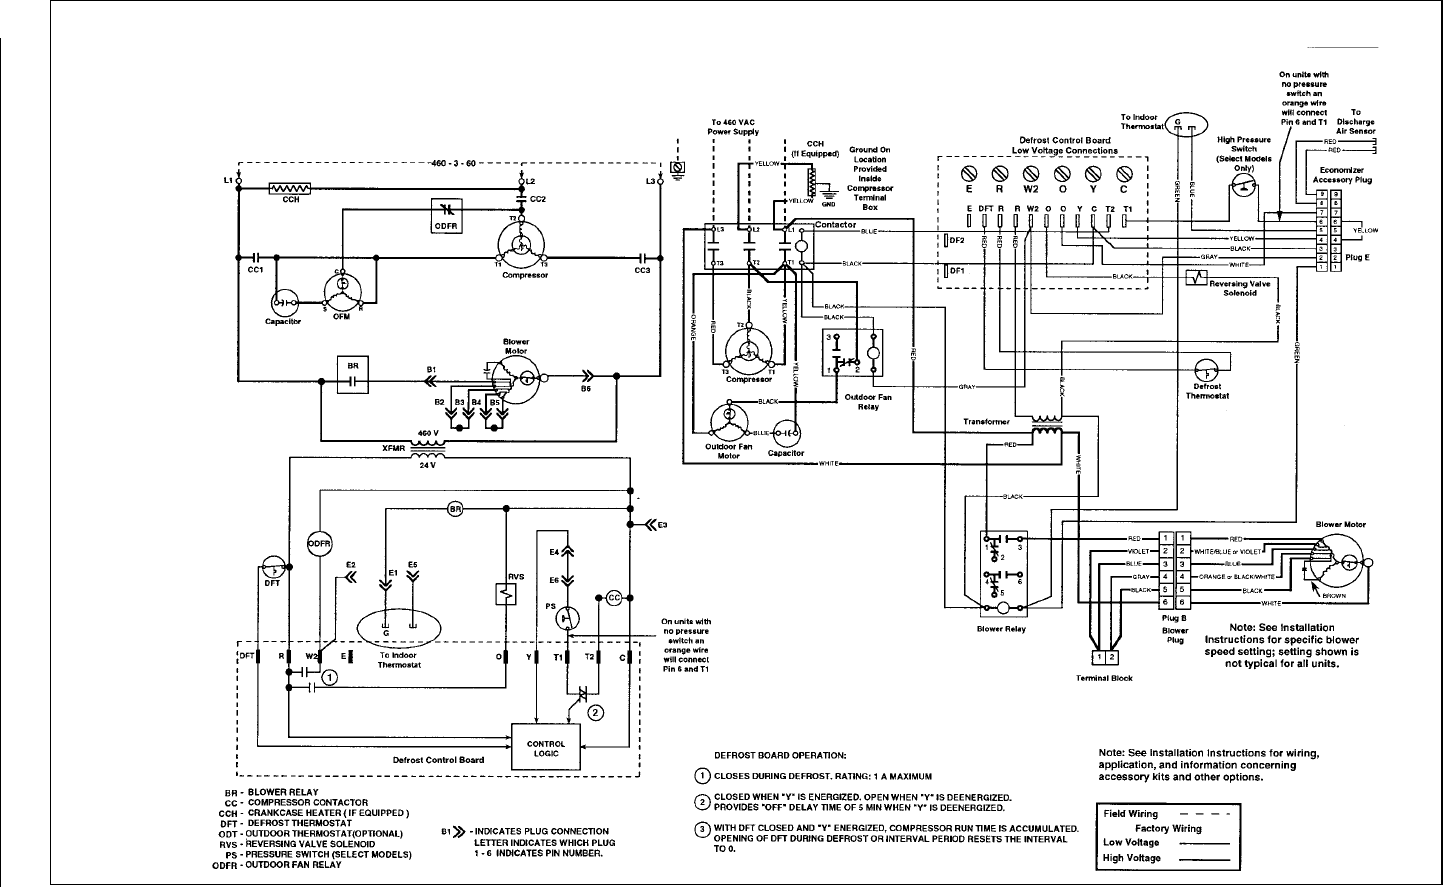 nordyne heat pump wiring diagram nordyne discover your wiring intertherm electric furnace wiring diagram